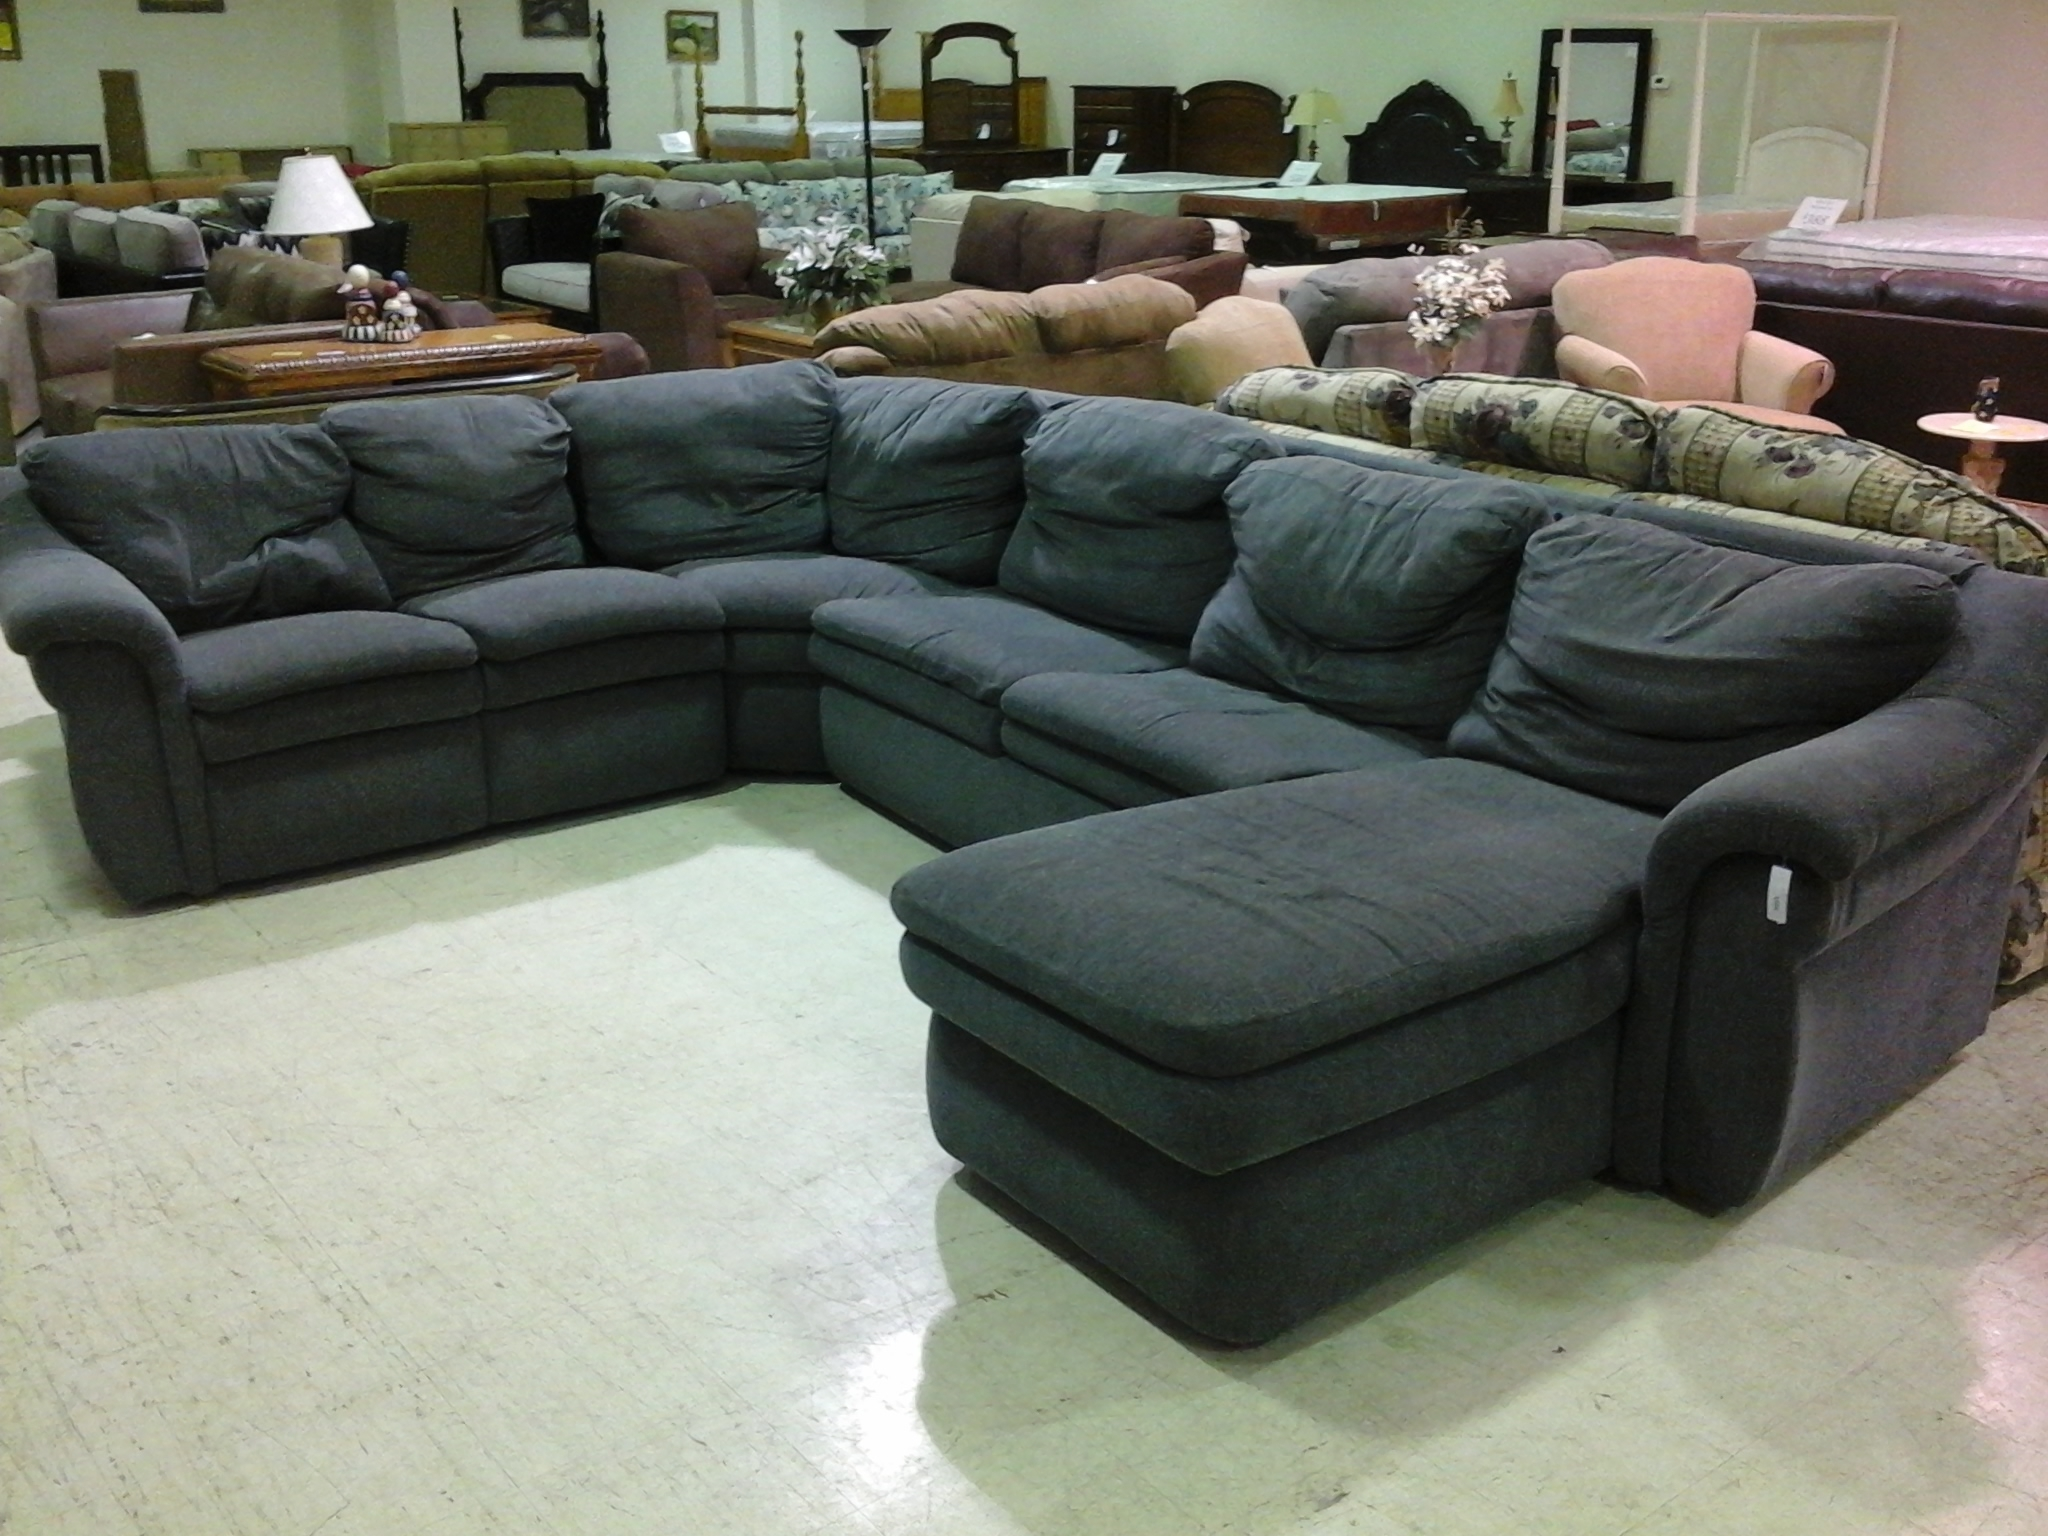 Queen Sofa Sleeper Sectional Microfiber | Functionalities Regarding Sectional Sofas At Calgary (View 12 of 15)